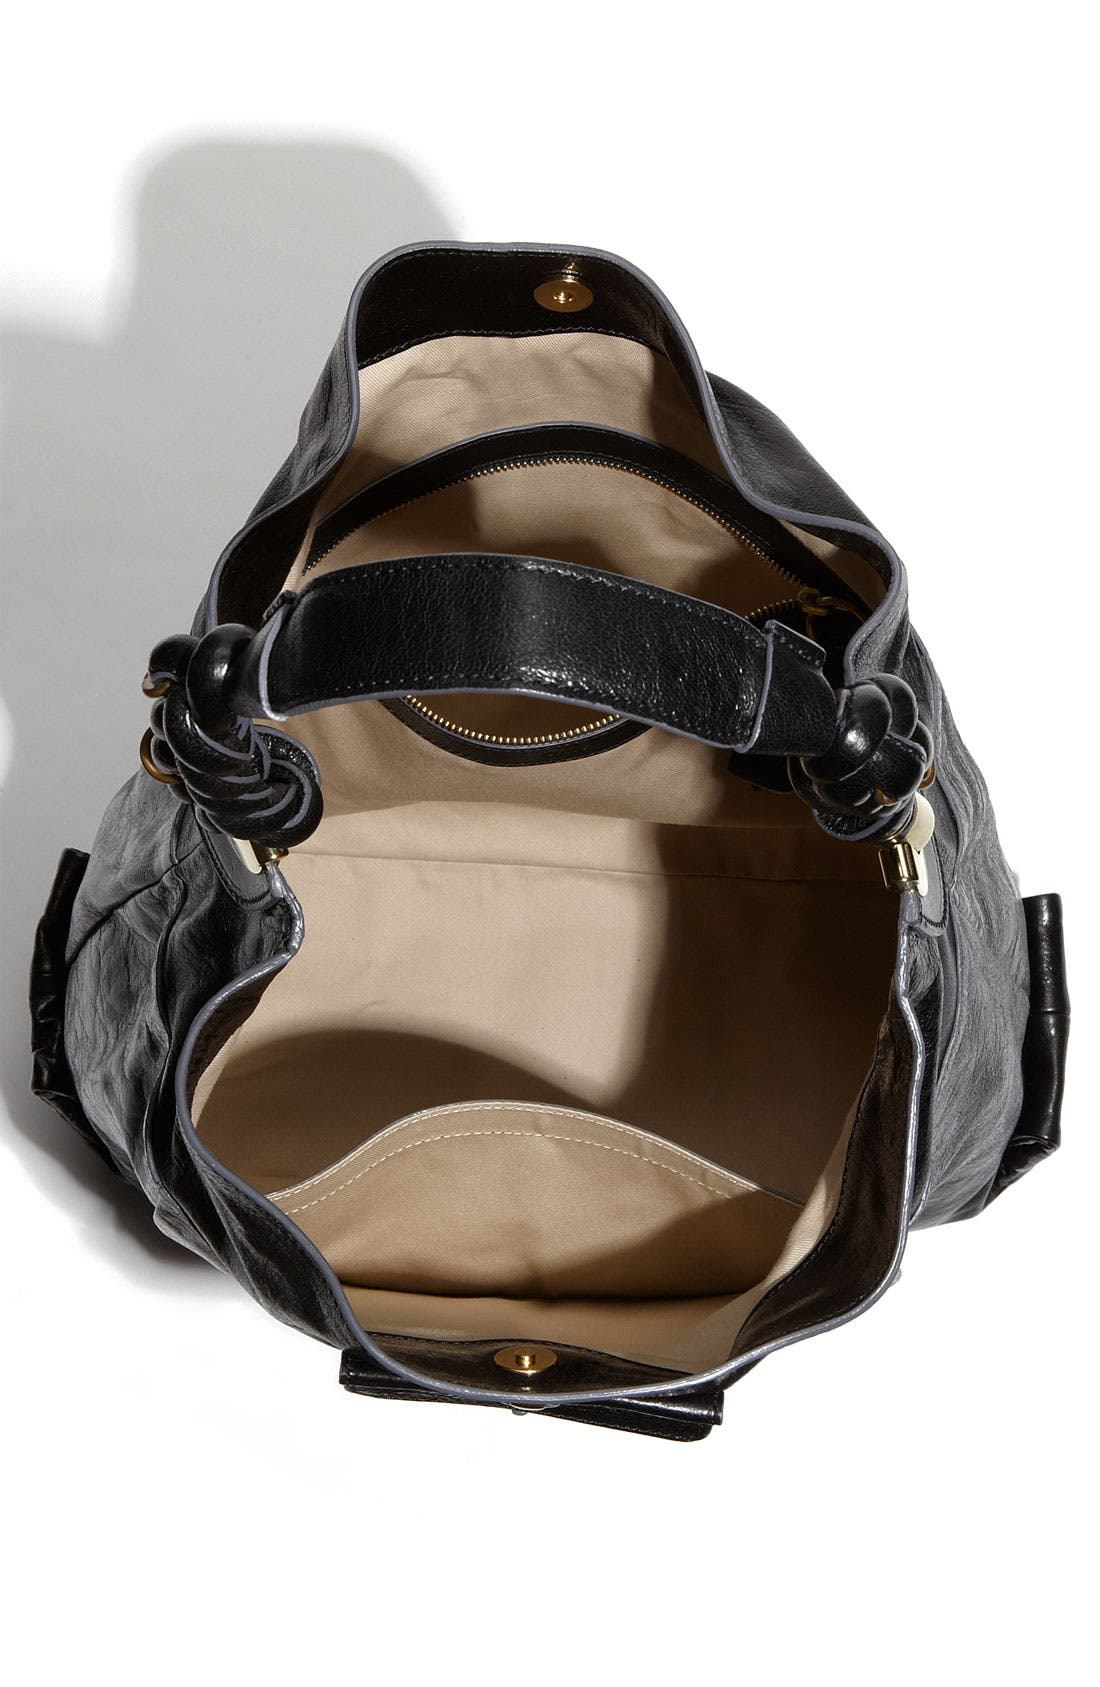 'Heloise' Leather Hobo,                             Alternate thumbnail 2, color,                             001